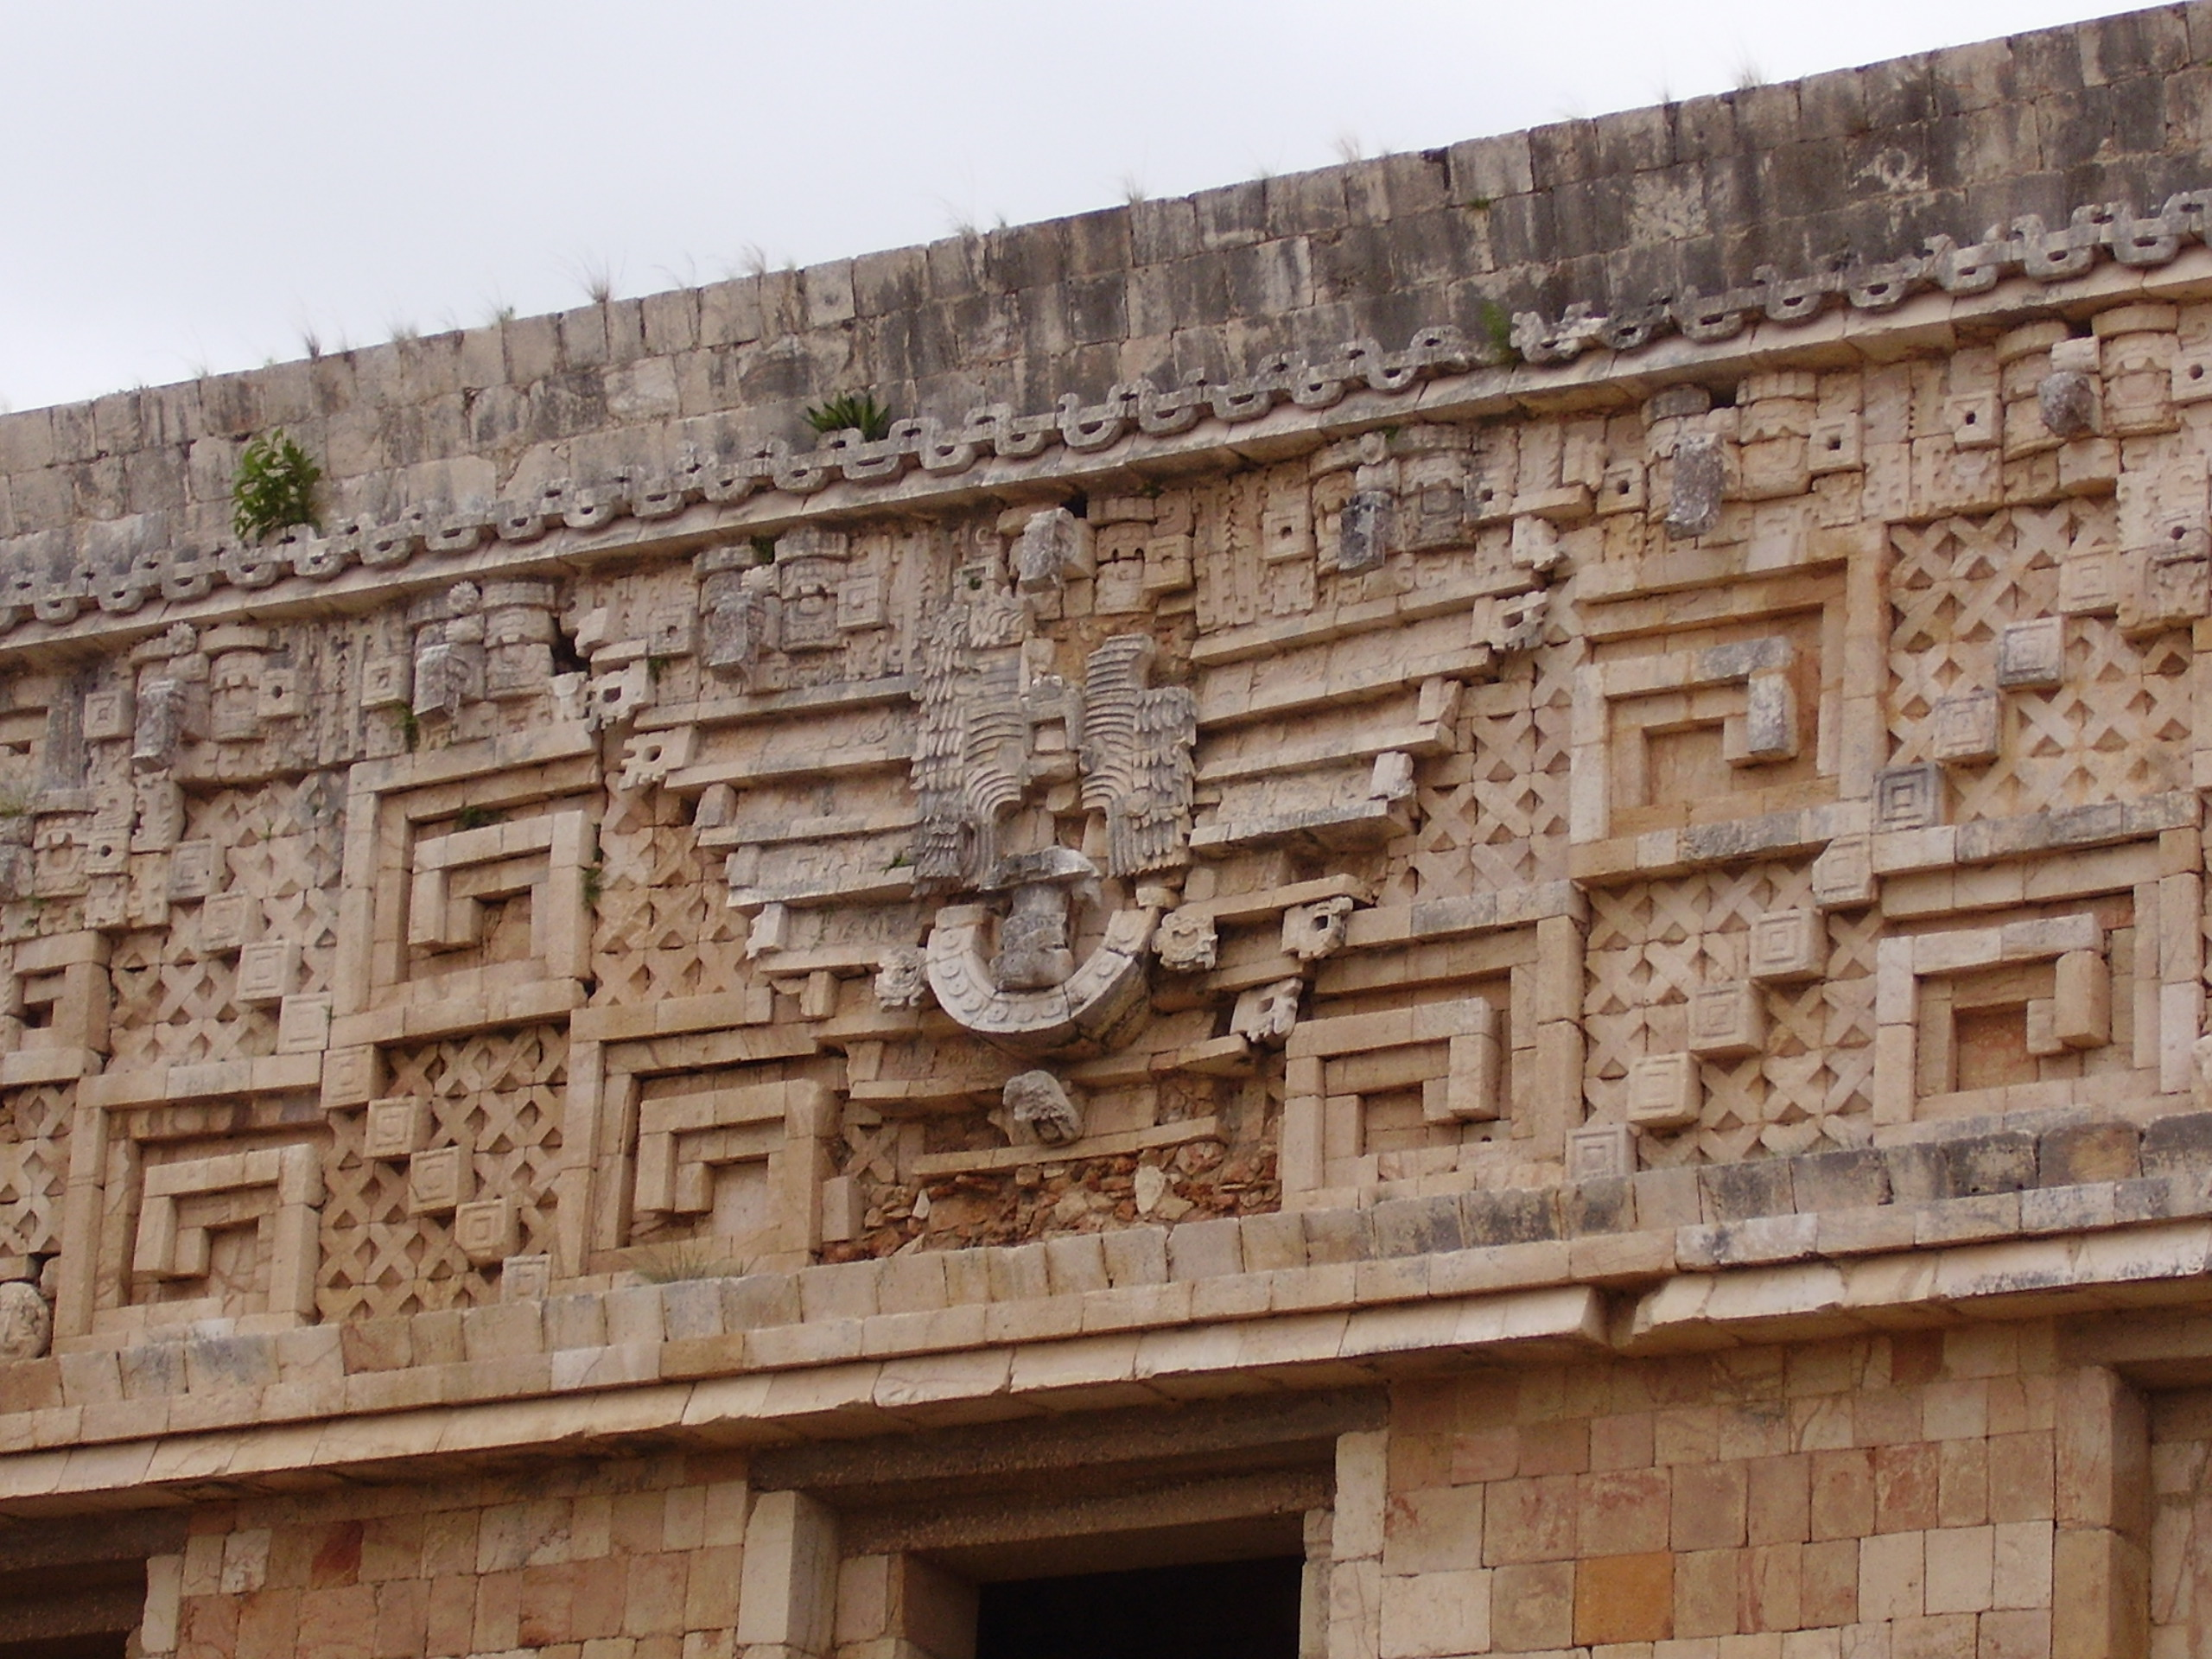 http://www.freeimageslive.co.uk/files/images004/uxmal_ruins_palace.JPG